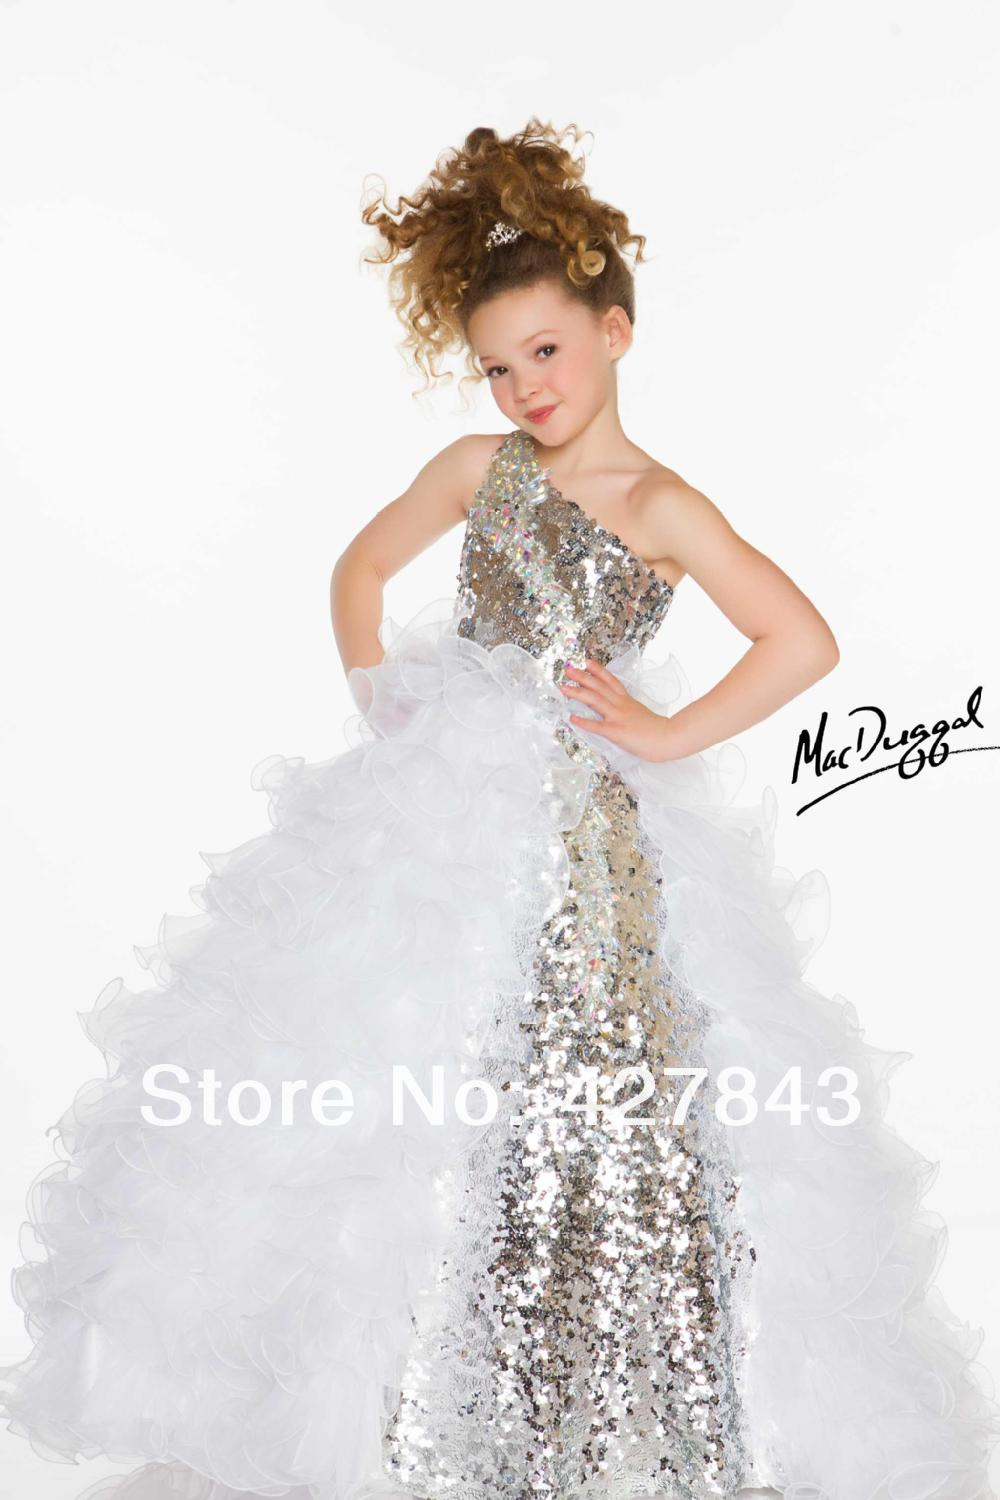 White-Silver-One Shoulder Cute Girls Pageant Dresses One Shoulder Stones Sequins Organza Layer Ruffle Skirts Fuchsia